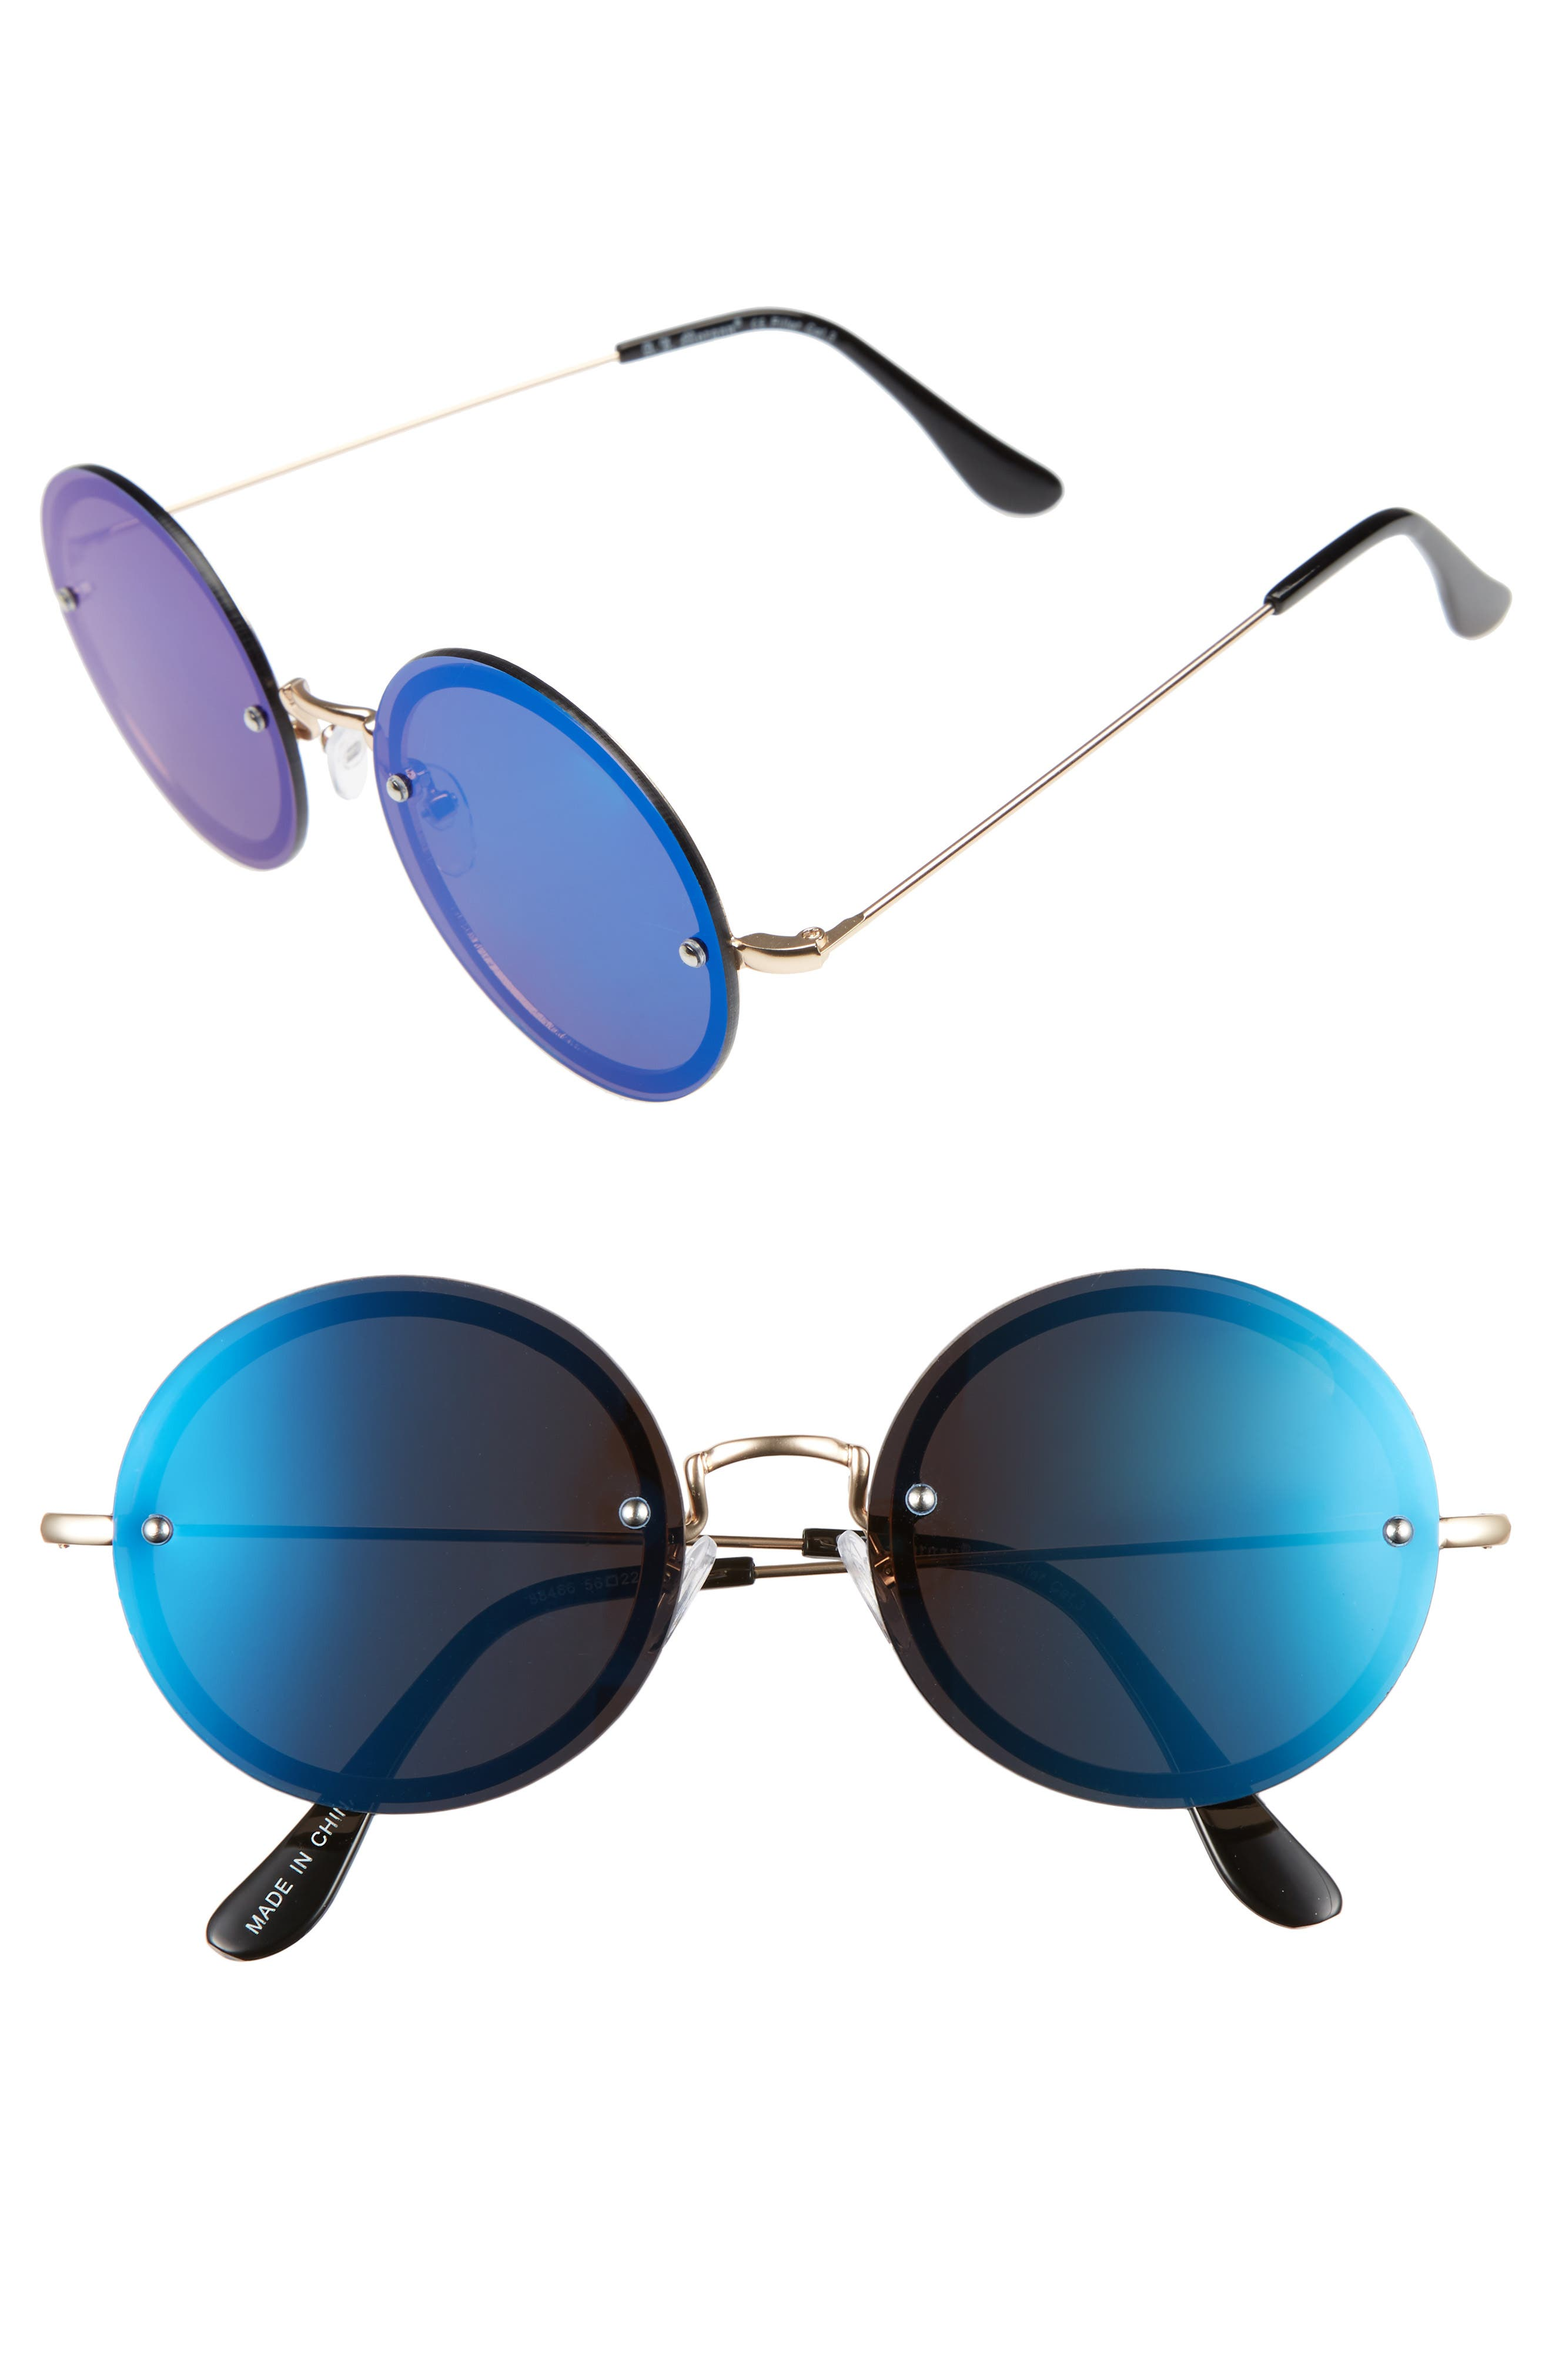 A.J. MORGAN 56mm Rimless Round Sunglasses